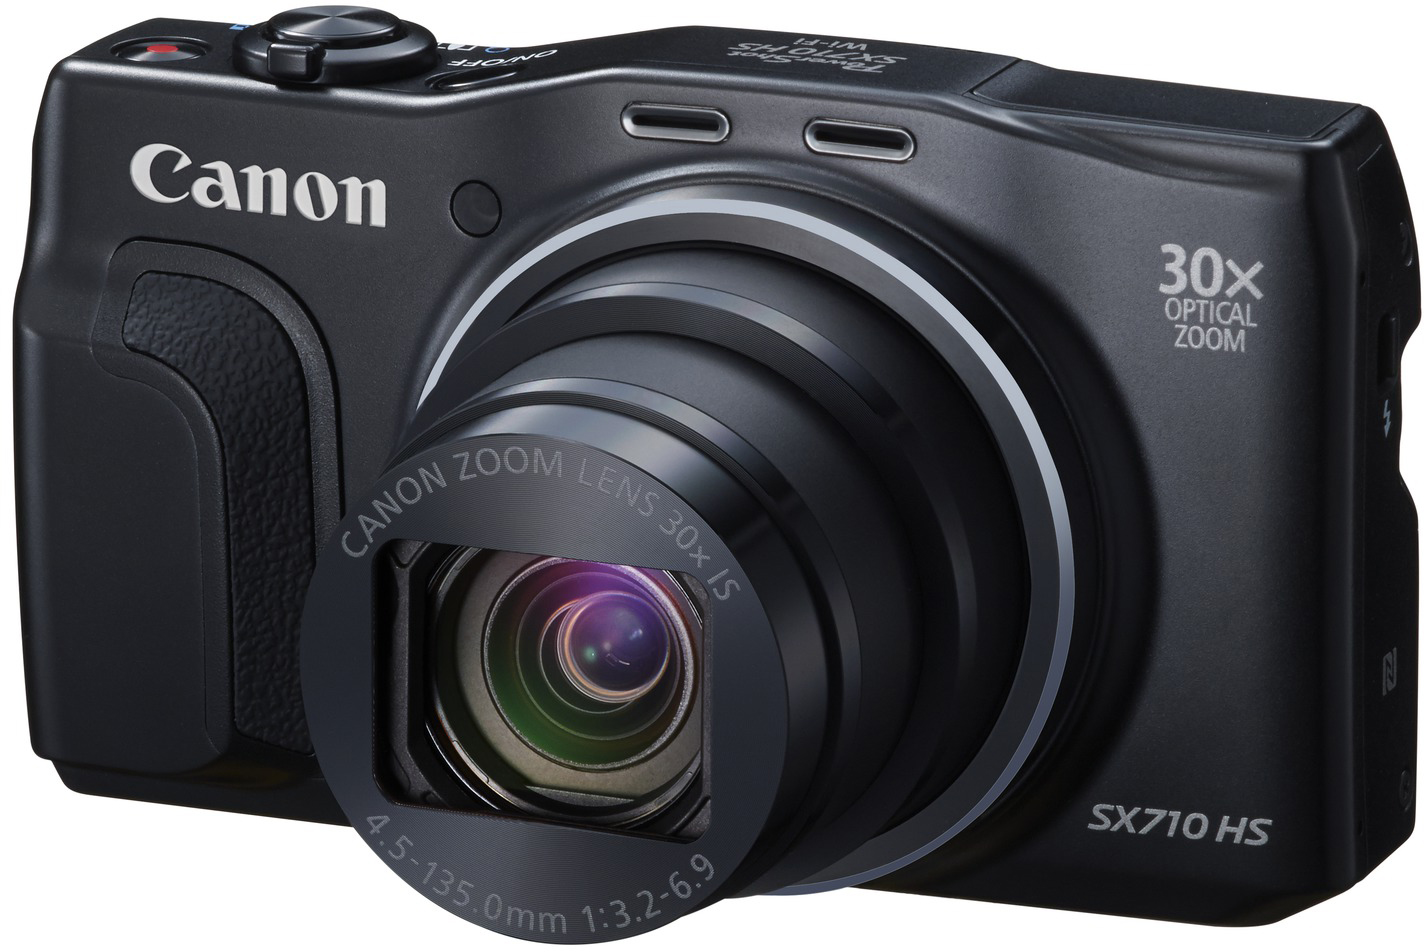 Canon PowerShot SX710 available on Orms Direct South Africa's biggest Online Photography Store